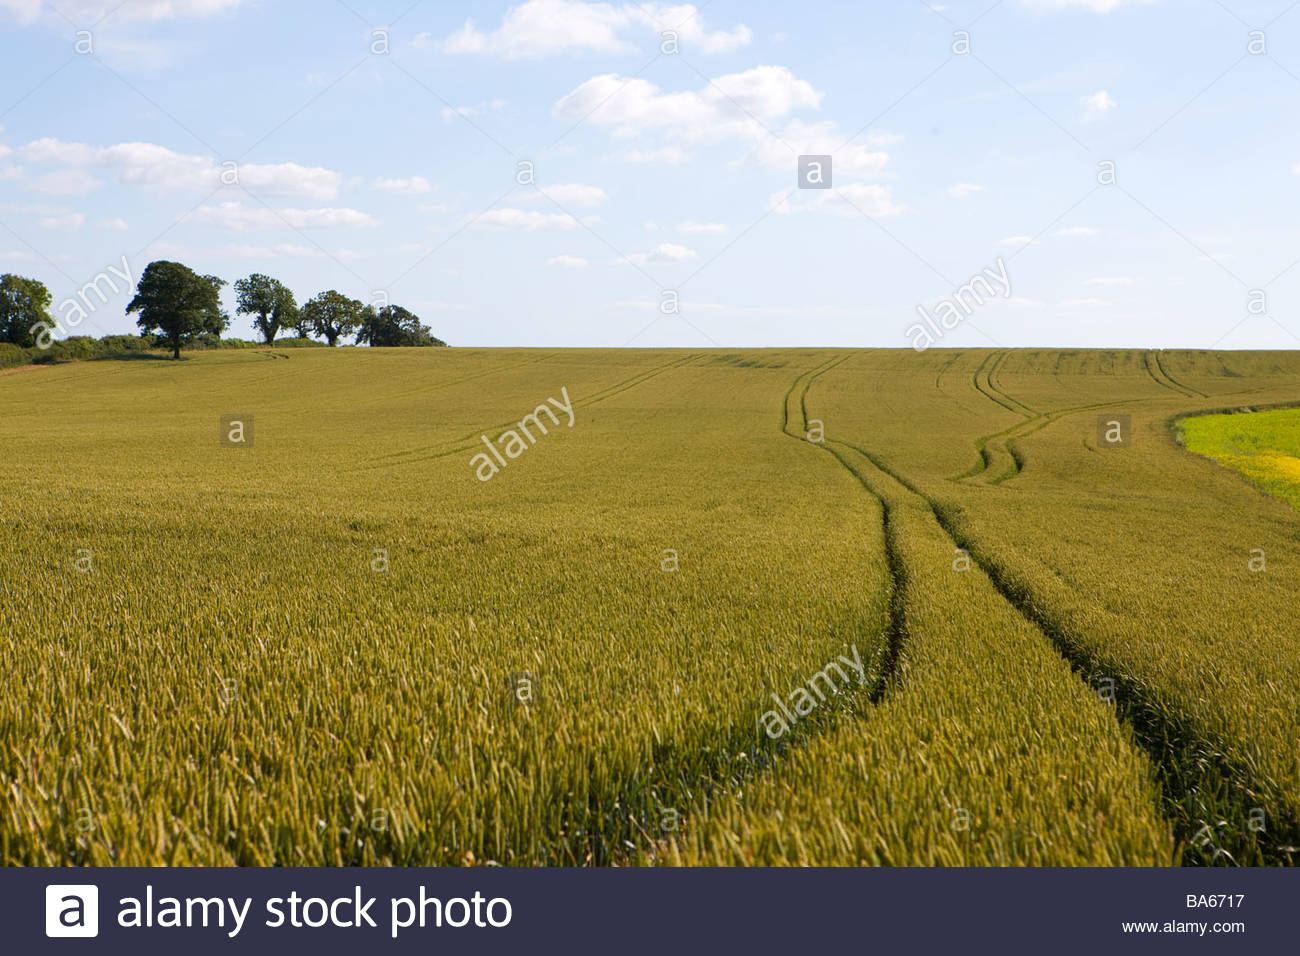 Tractor tracks in wheat field - Stock Image